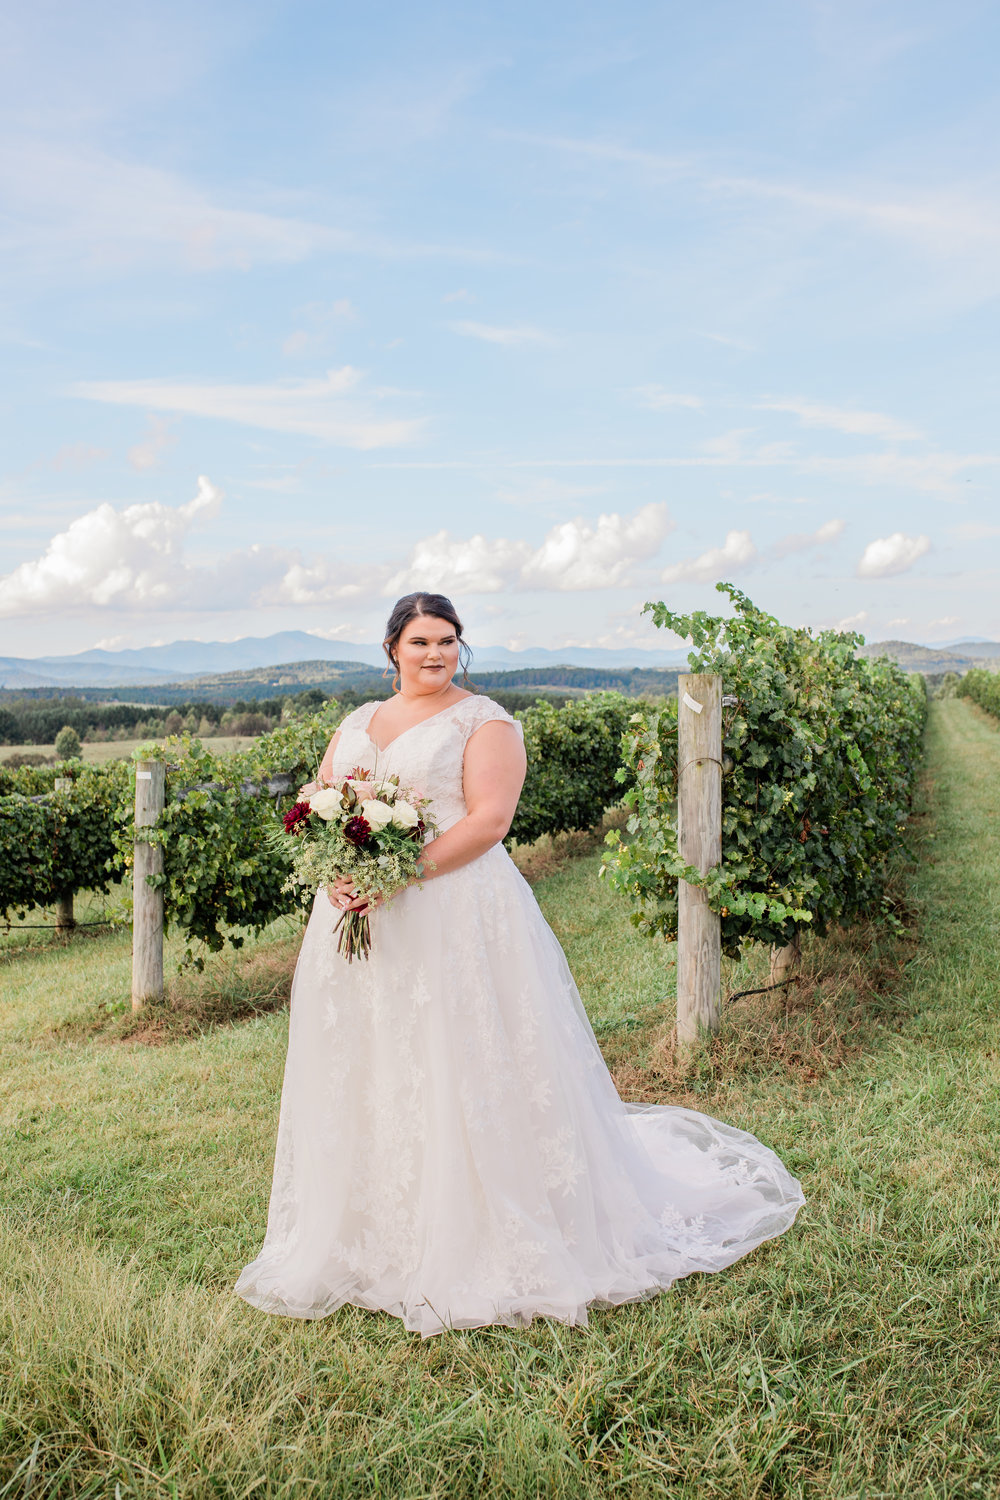 Brandi | Chattooga Belle Farm